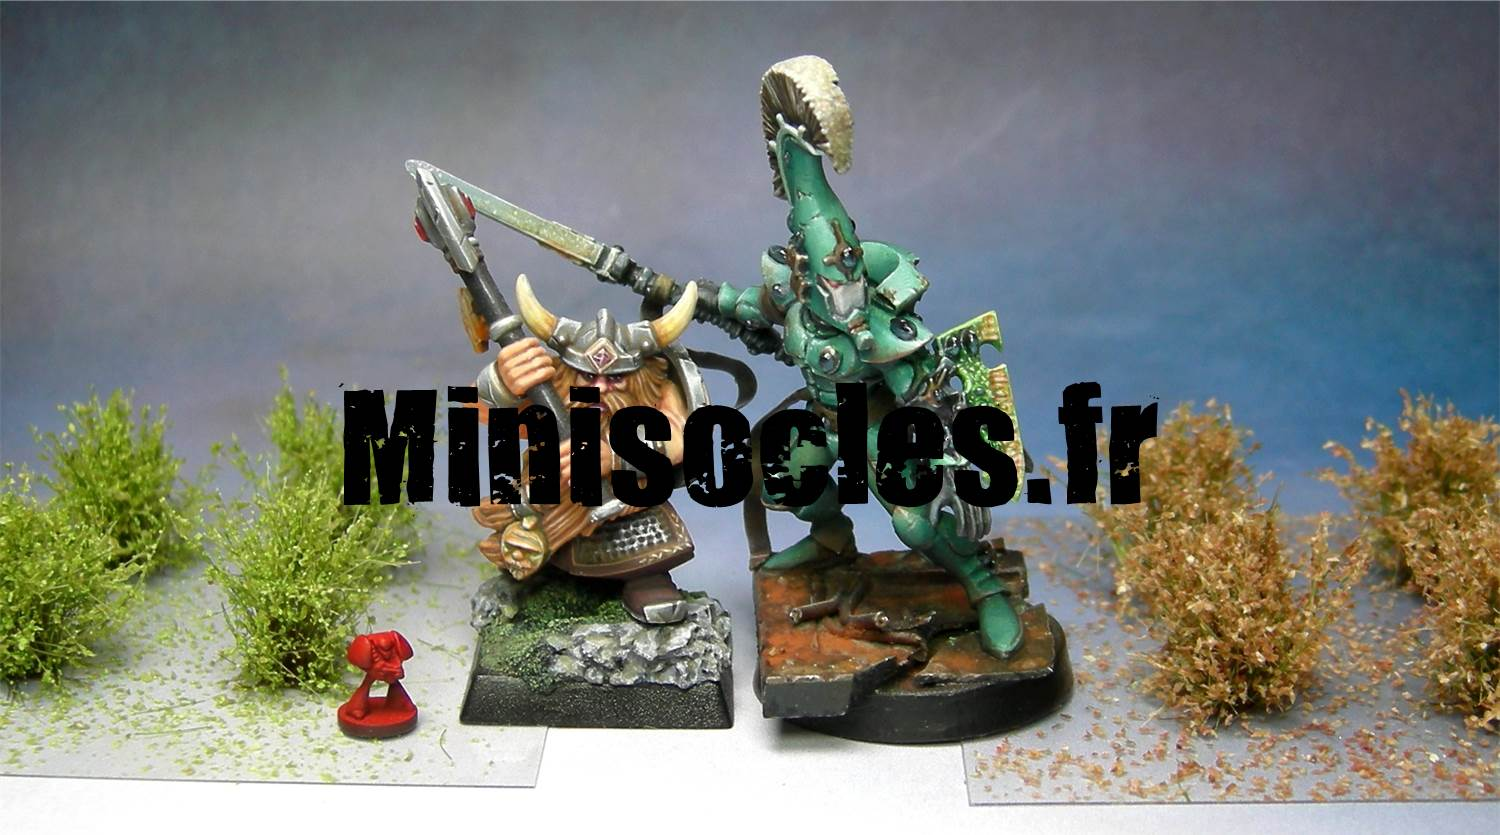 arbustes socles figurines MINISOCLES